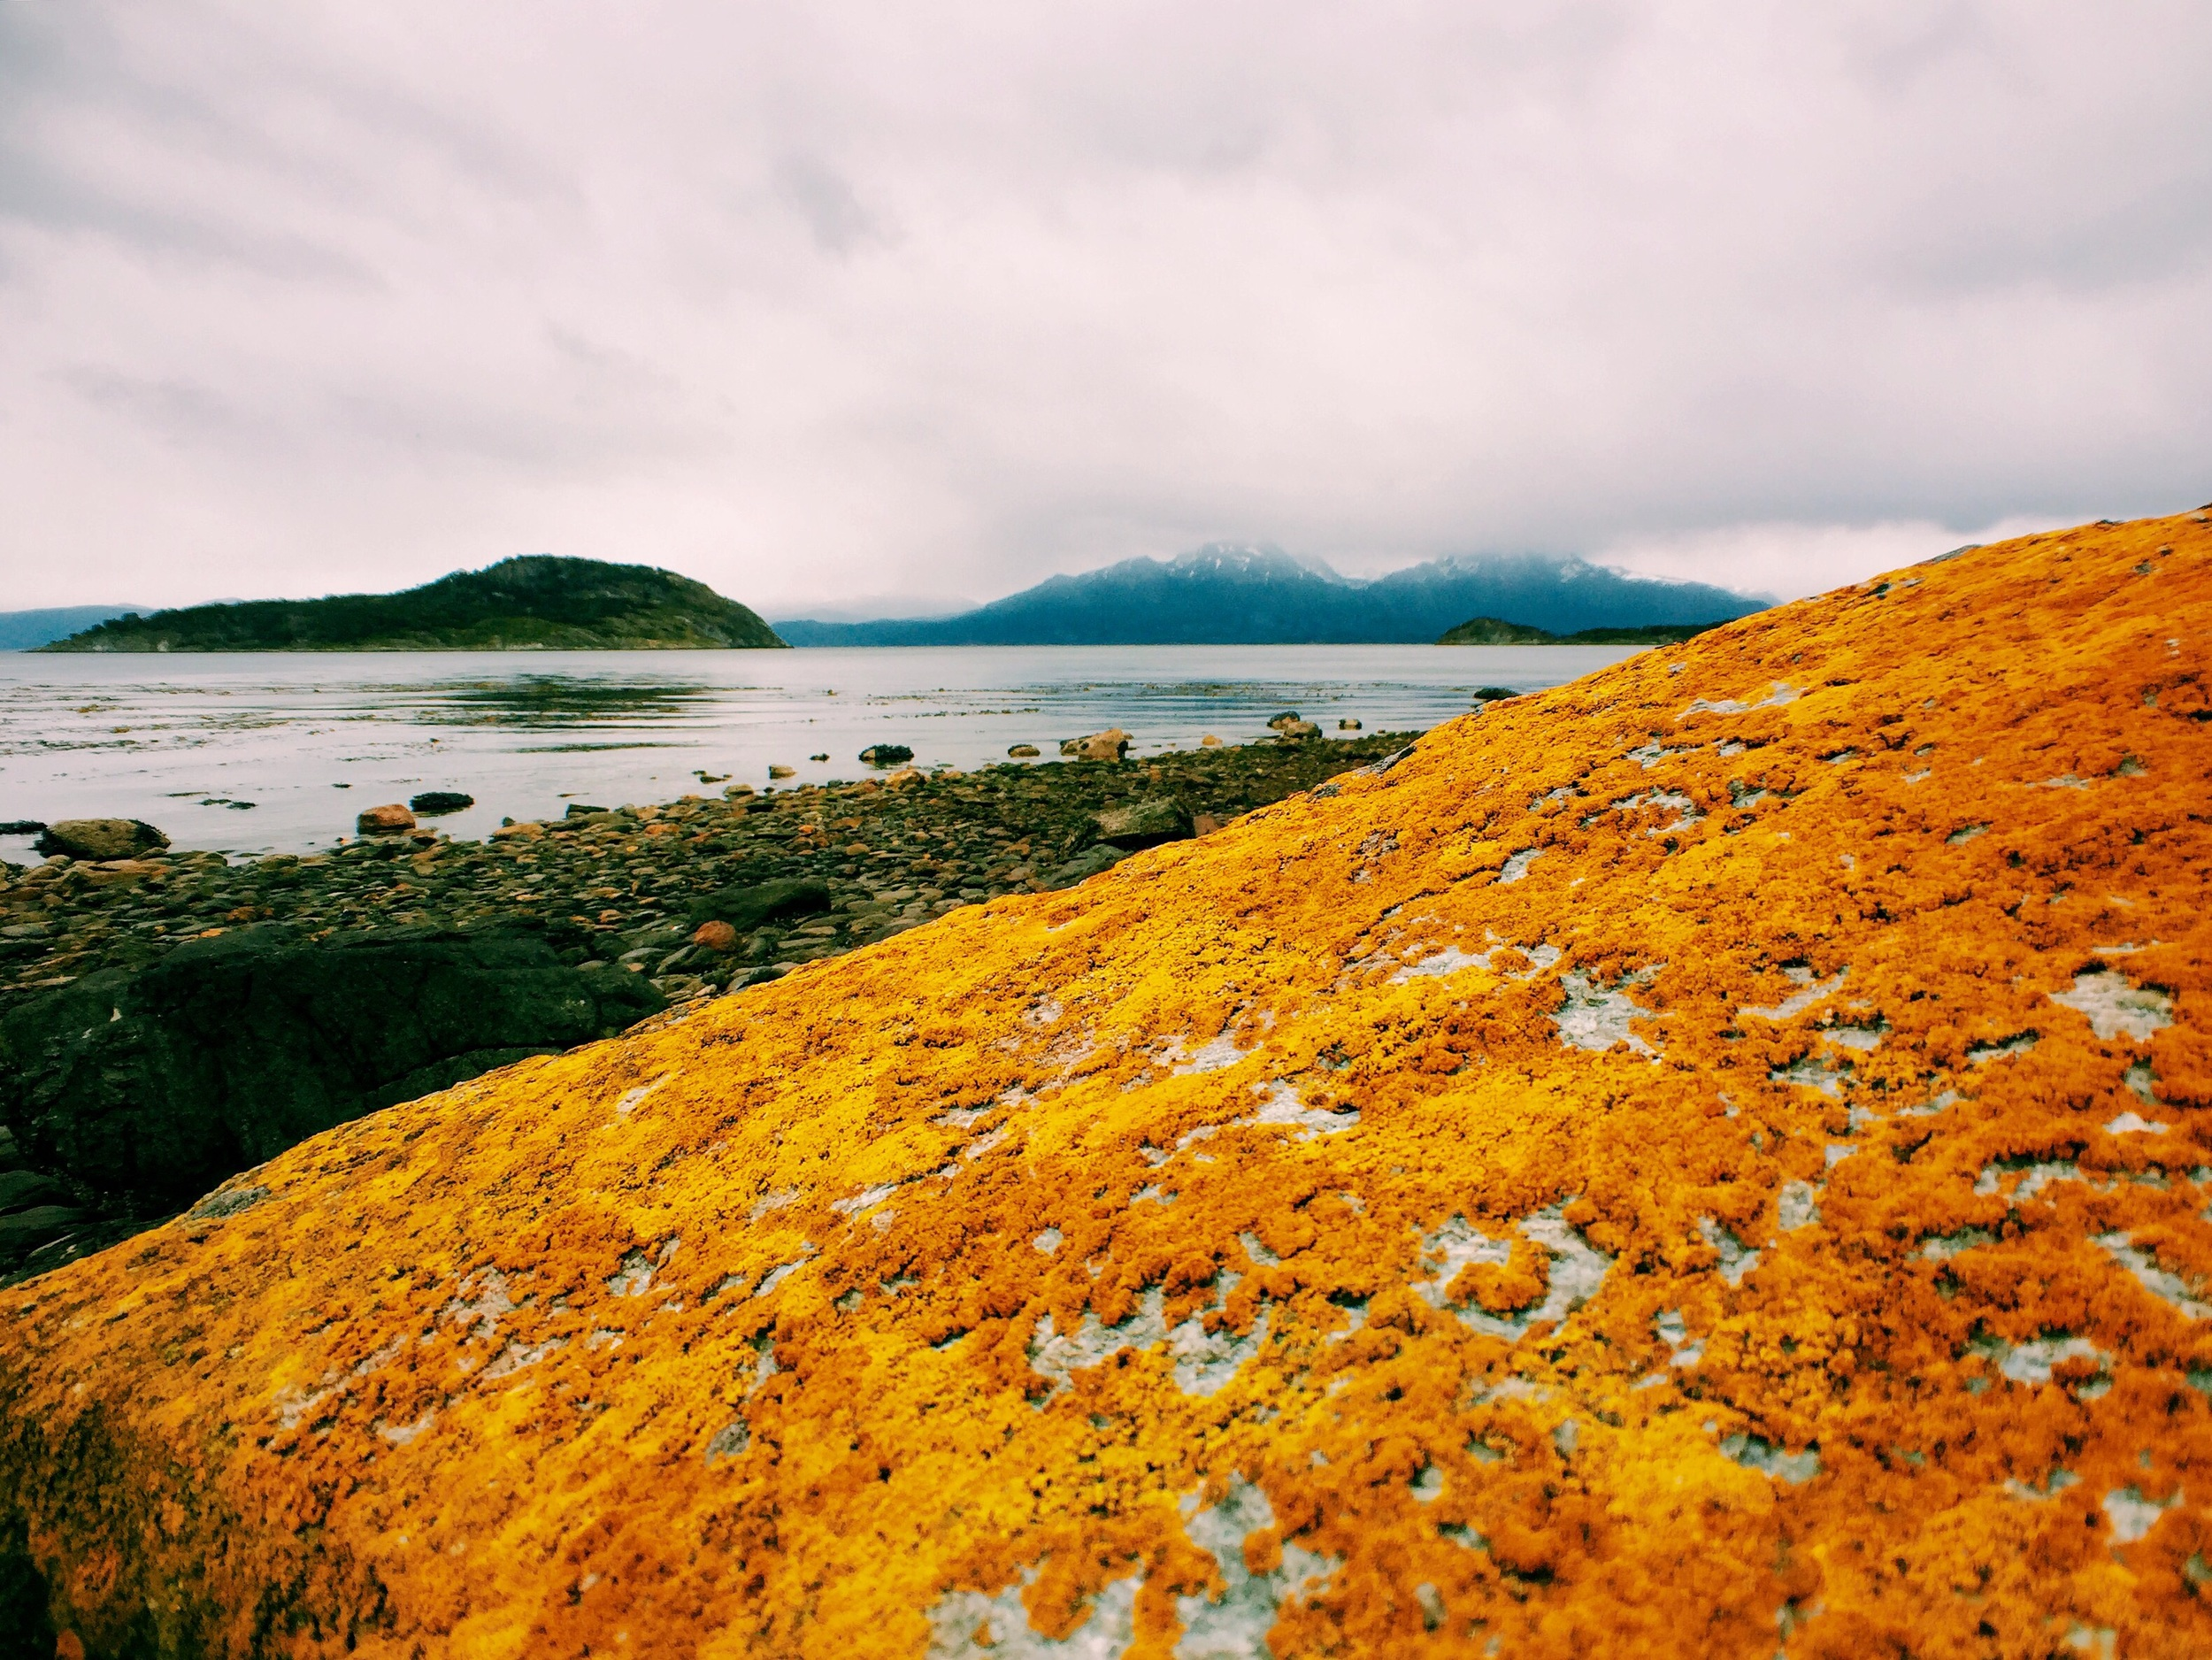 More incredible colors. The lichen at Tierra del Fuego sparkles against the gray skies.